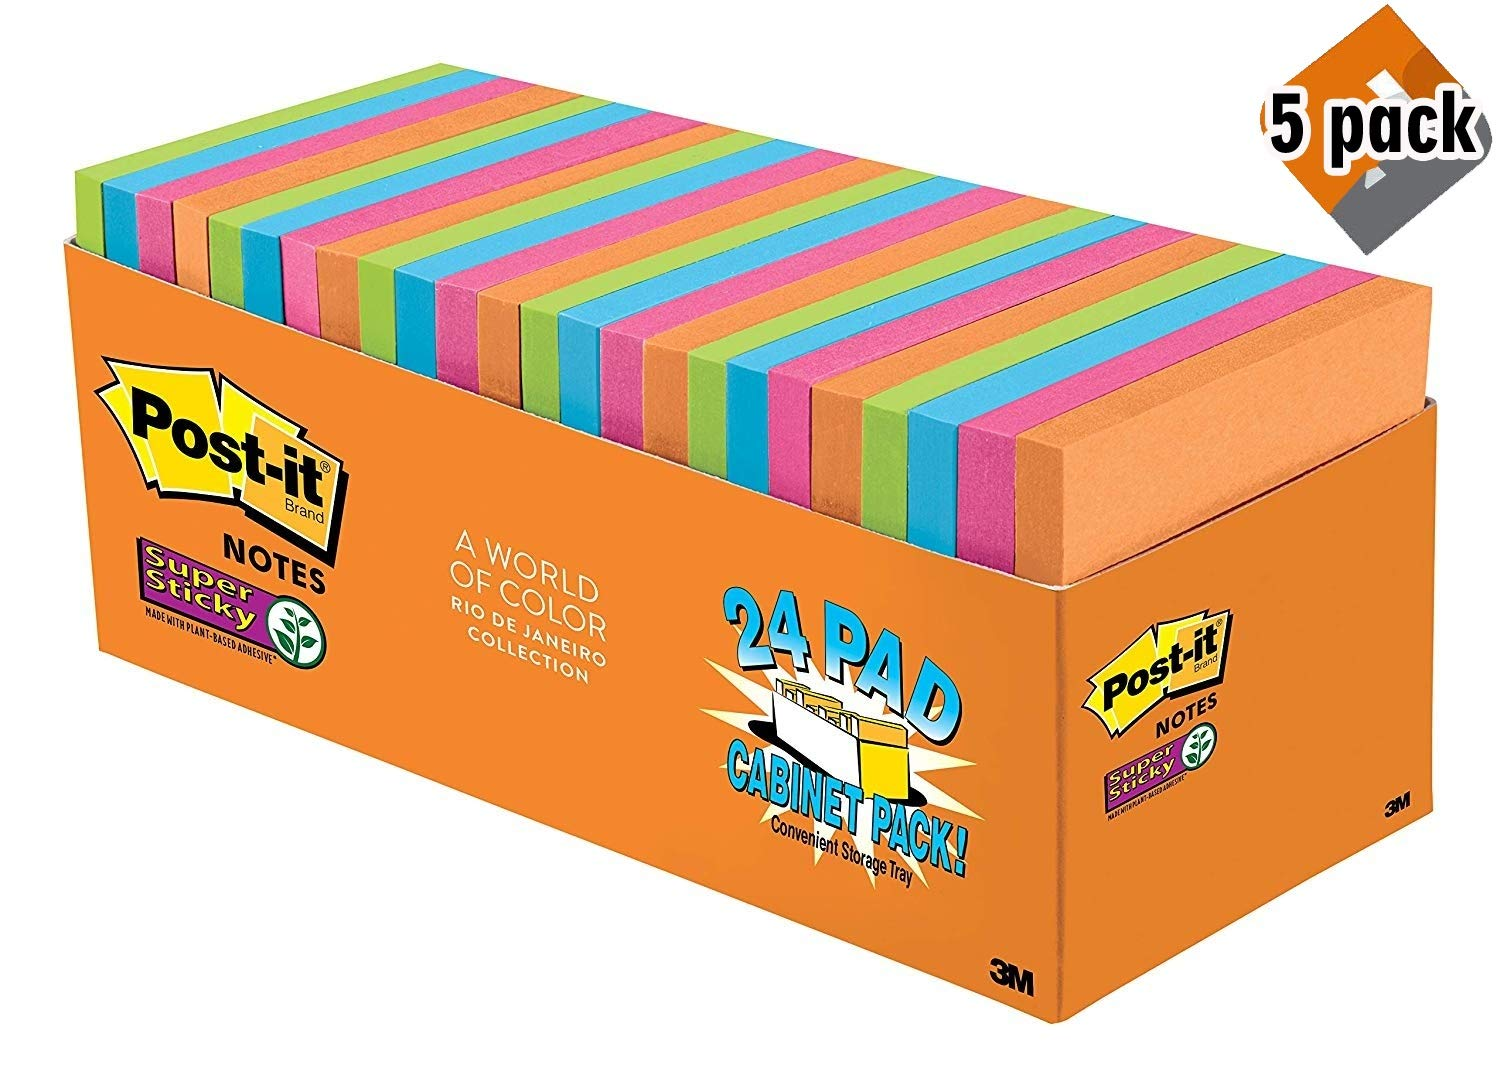 Post-it Super Sticky Notes, Orange, Green, Blue, Pink, Yellow, 2X The Sticking Power, Great for Windows, Doors and Walls, Value Pack, 3 in. x 3 in, 24 Pads/Pack, 70 Sheets/Pad (654-24SSAU-CP), 5 Pack